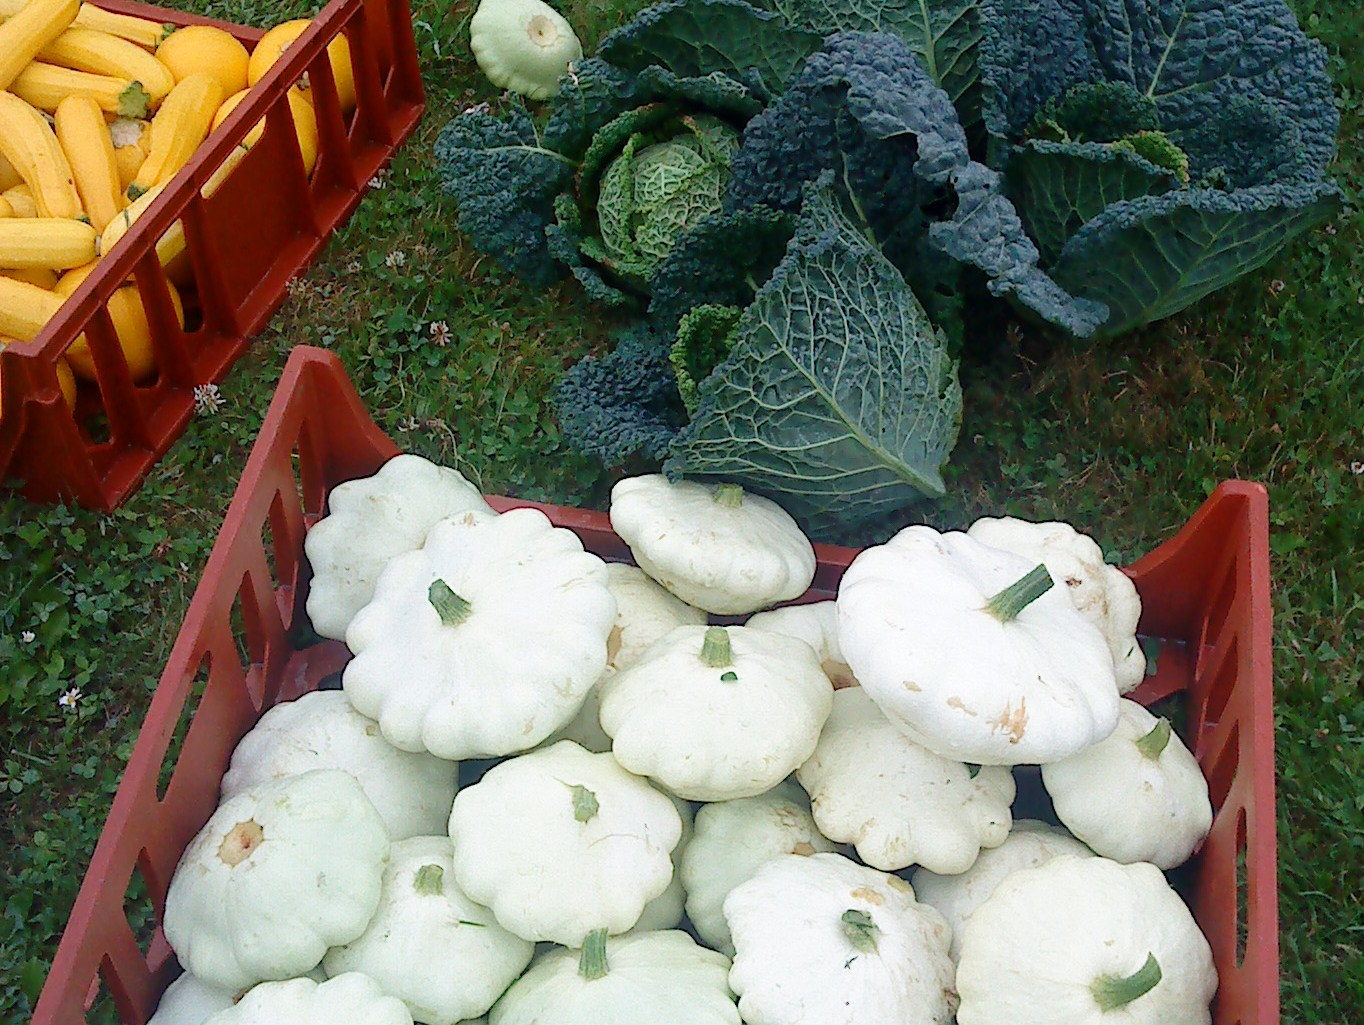 White patty pan squash how to cook the patty pan